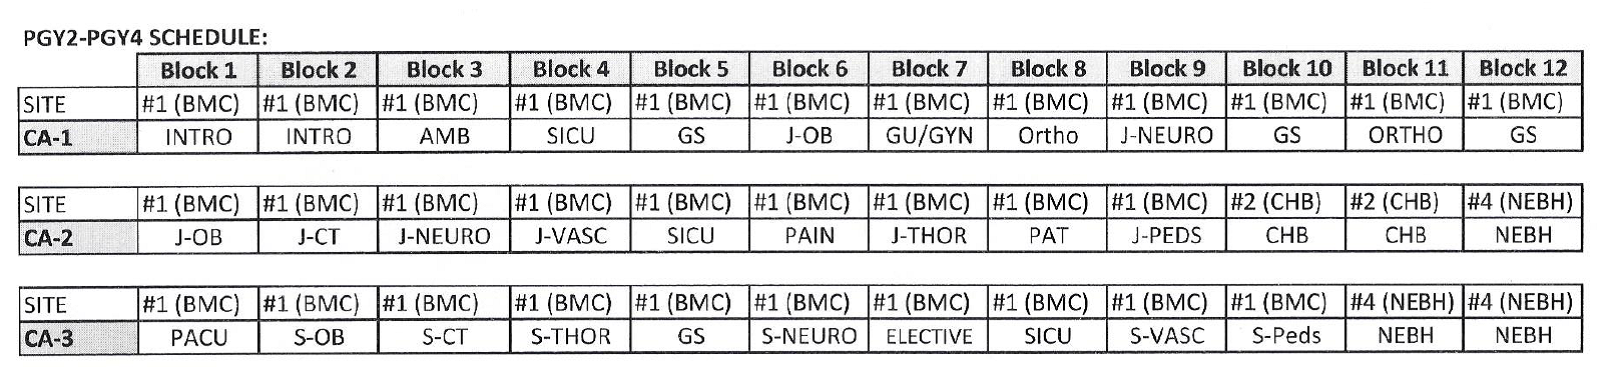 anesthesia-block-schedule.